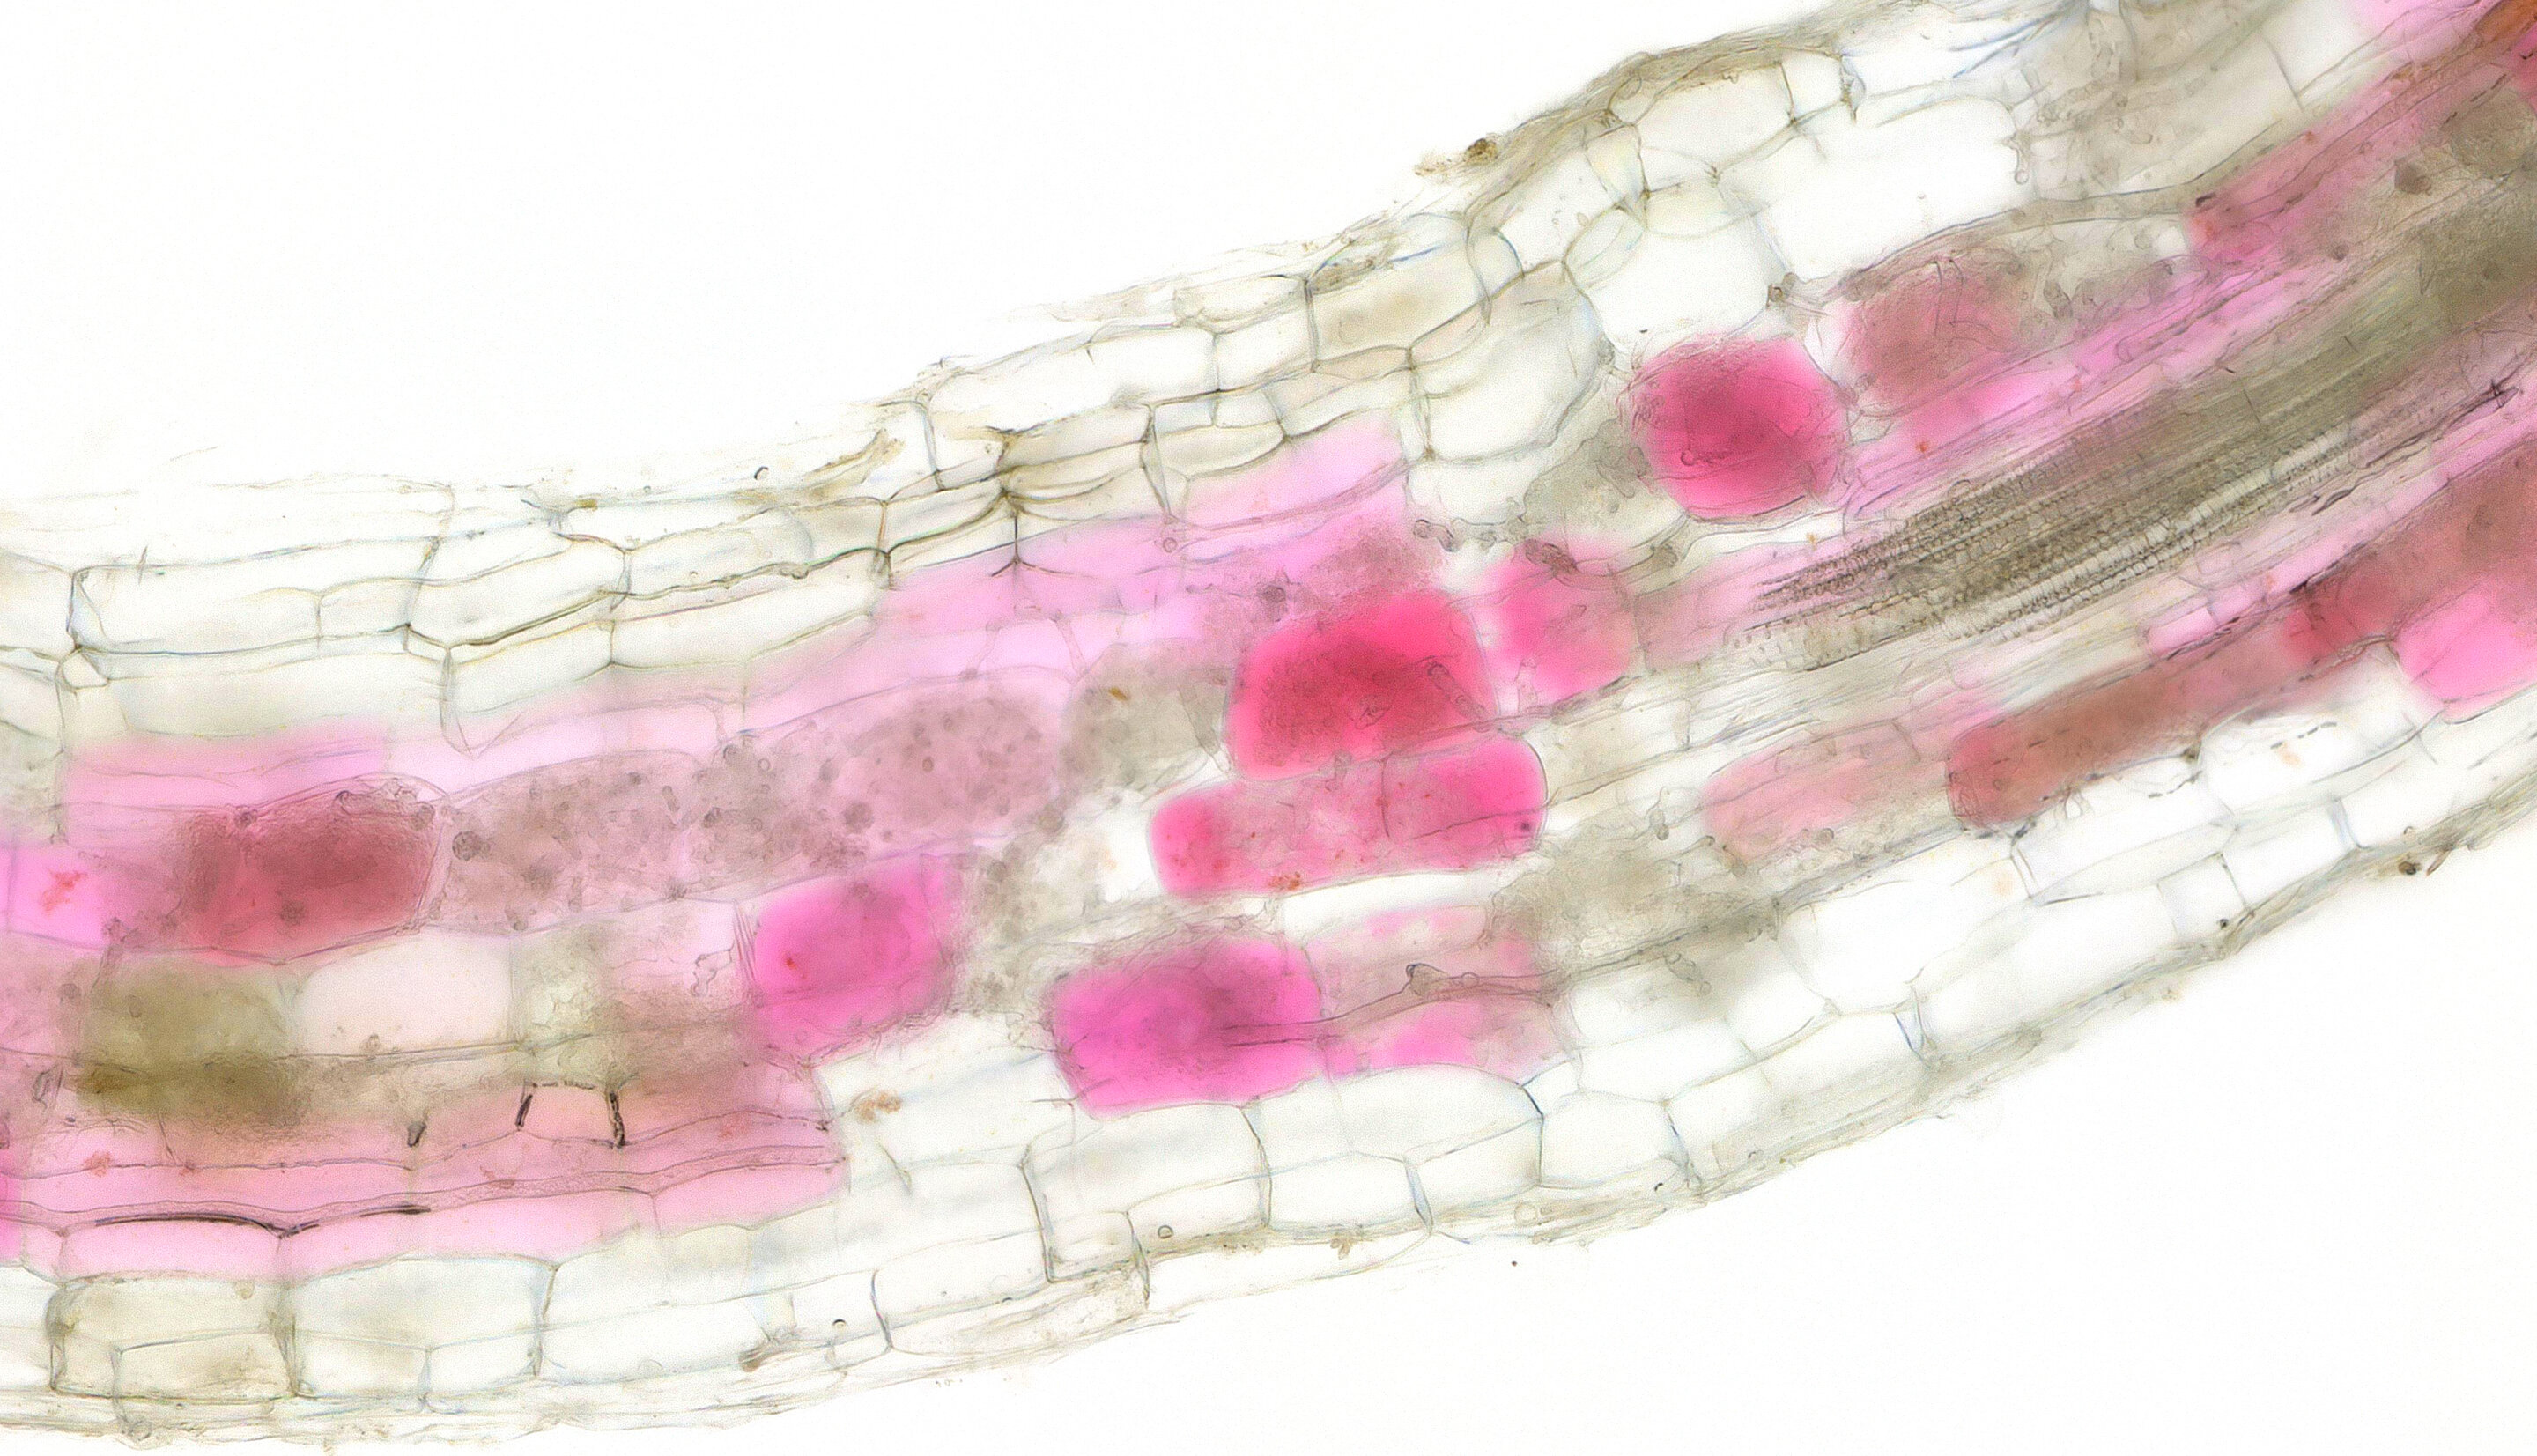 phys.org - Science X staff - Beetroot dye helps biologists 'track and trace' symbiotic fungi for sustainable farming